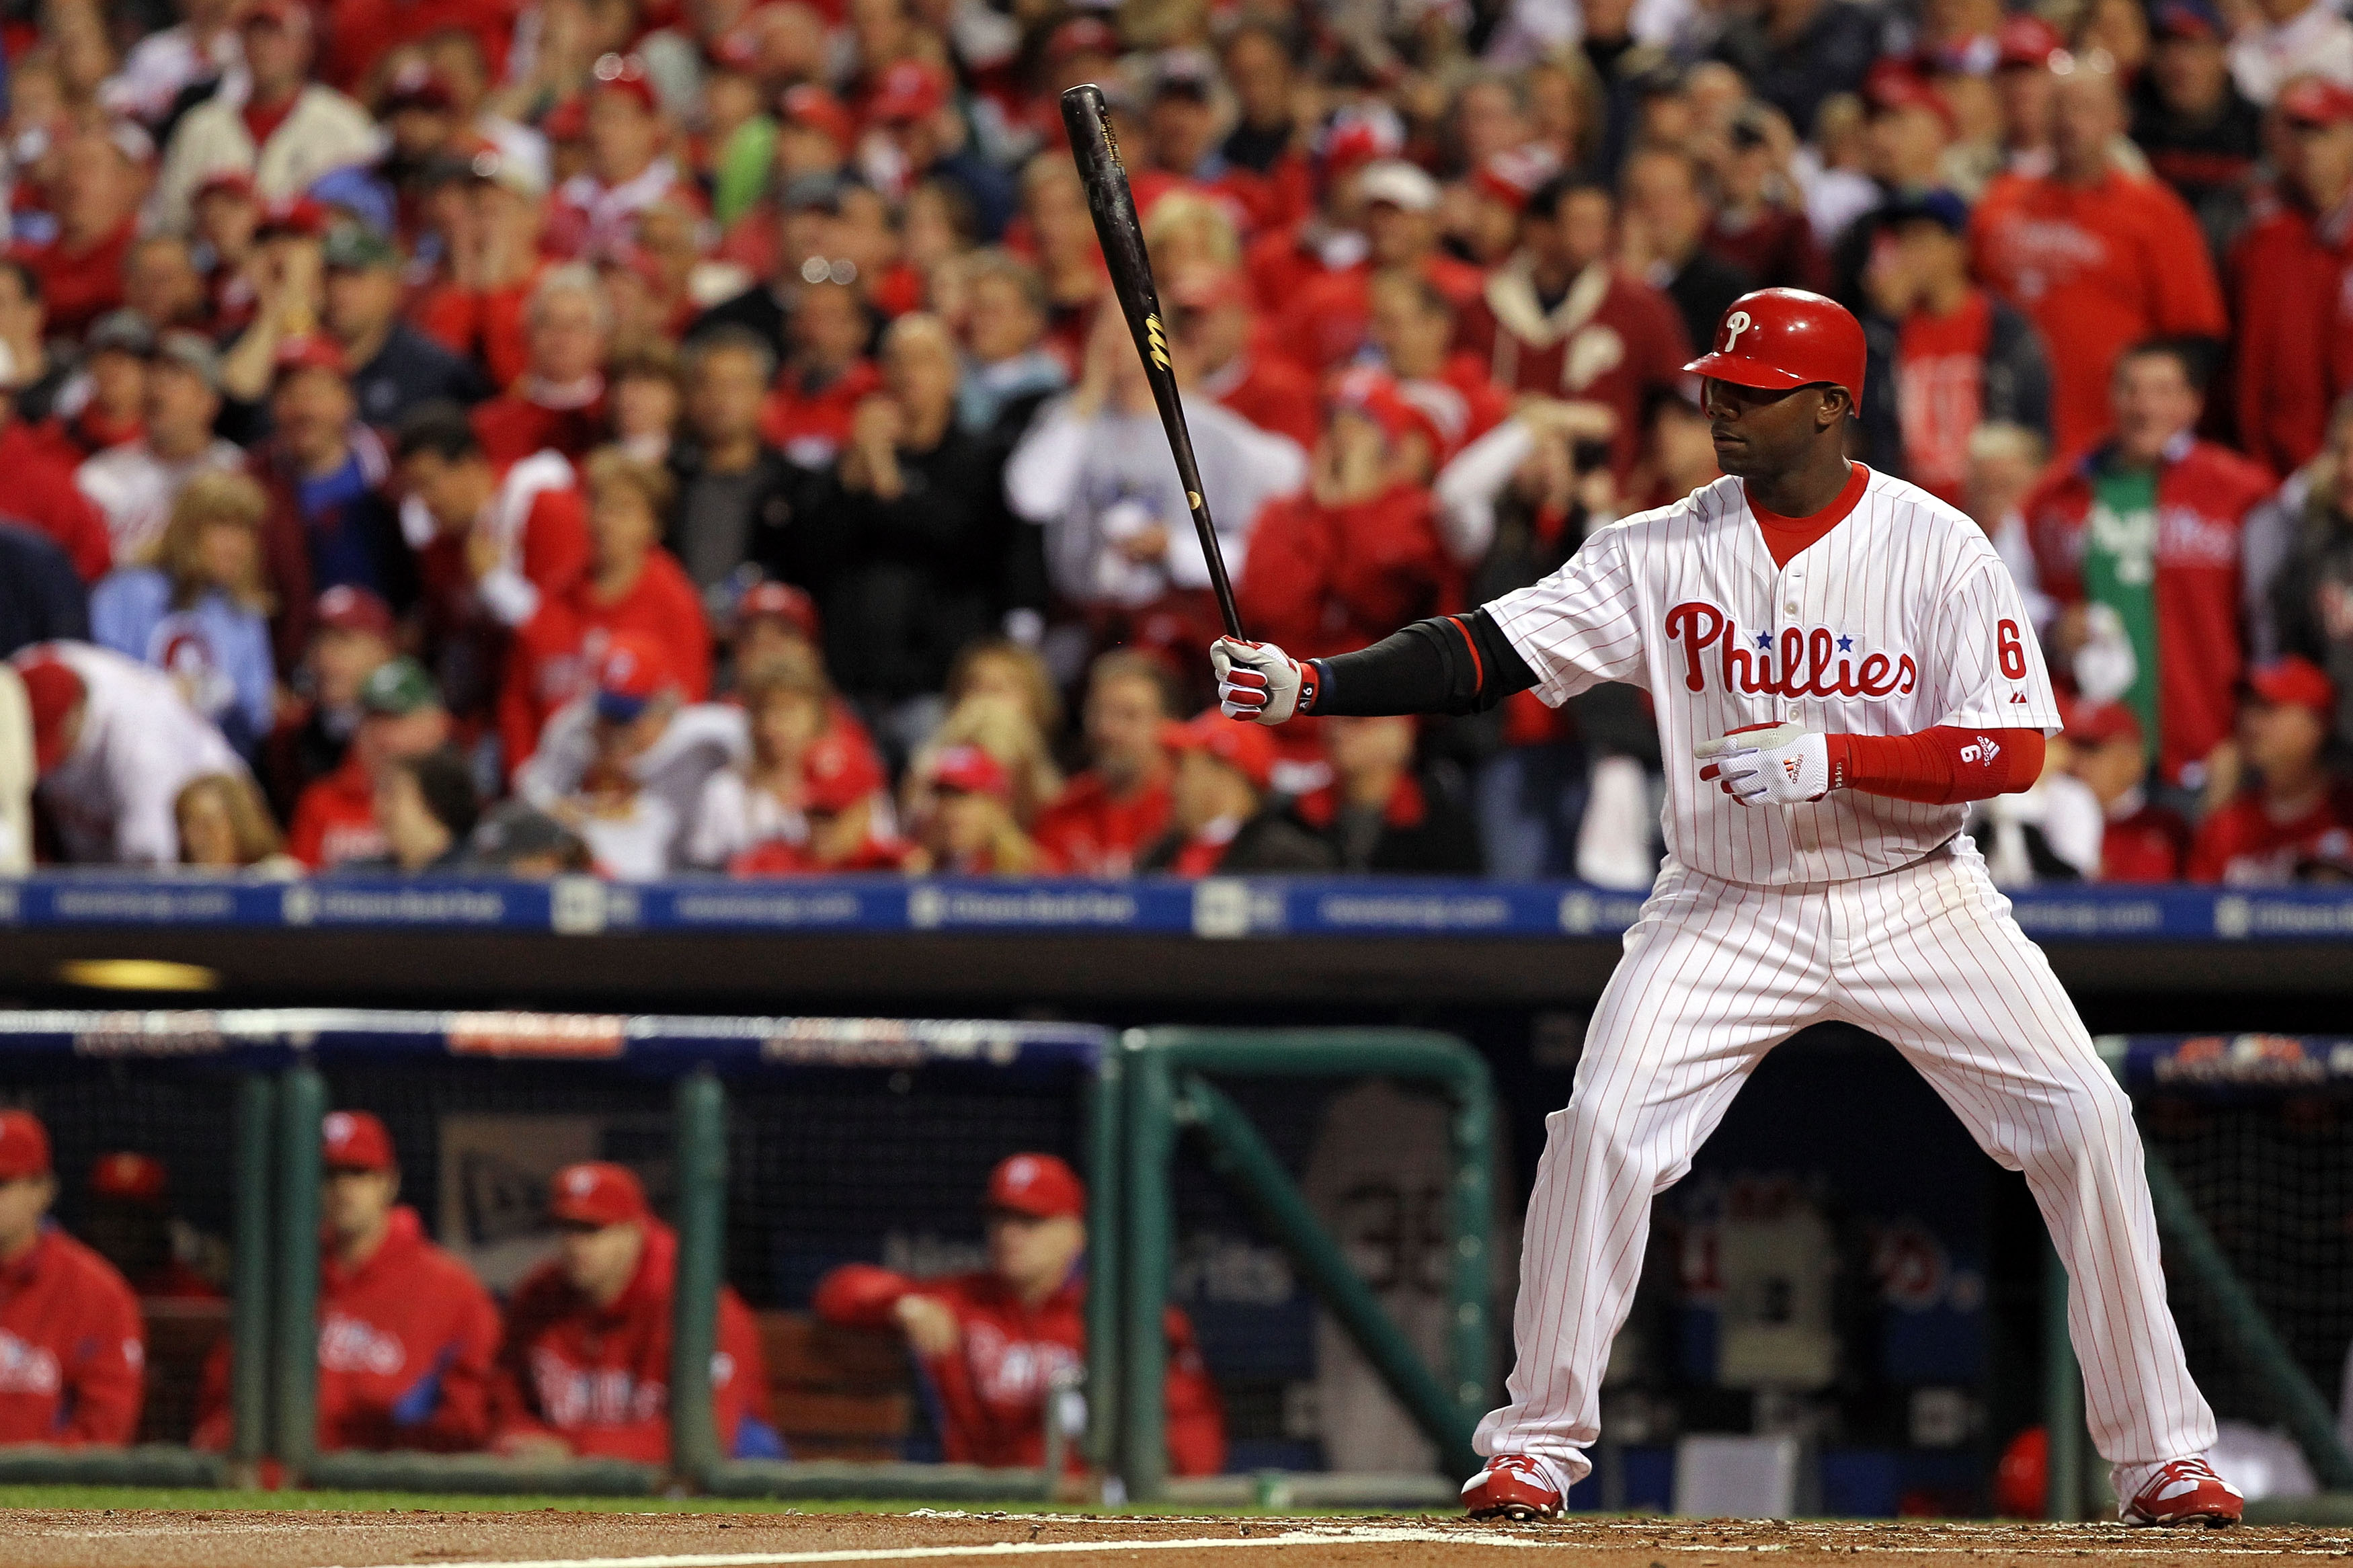 PHILADELPHIA - OCTOBER 23:  Ryan Howard #6 of the Philadelphia Phillies bats against the San Francisco Giants in Game Six of the NLCS during the 2010 MLB Playoffs at Citizens Bank Park on October 23, 2010 in Philadelphia, Pennsylvania.  (Photo by Al Bello